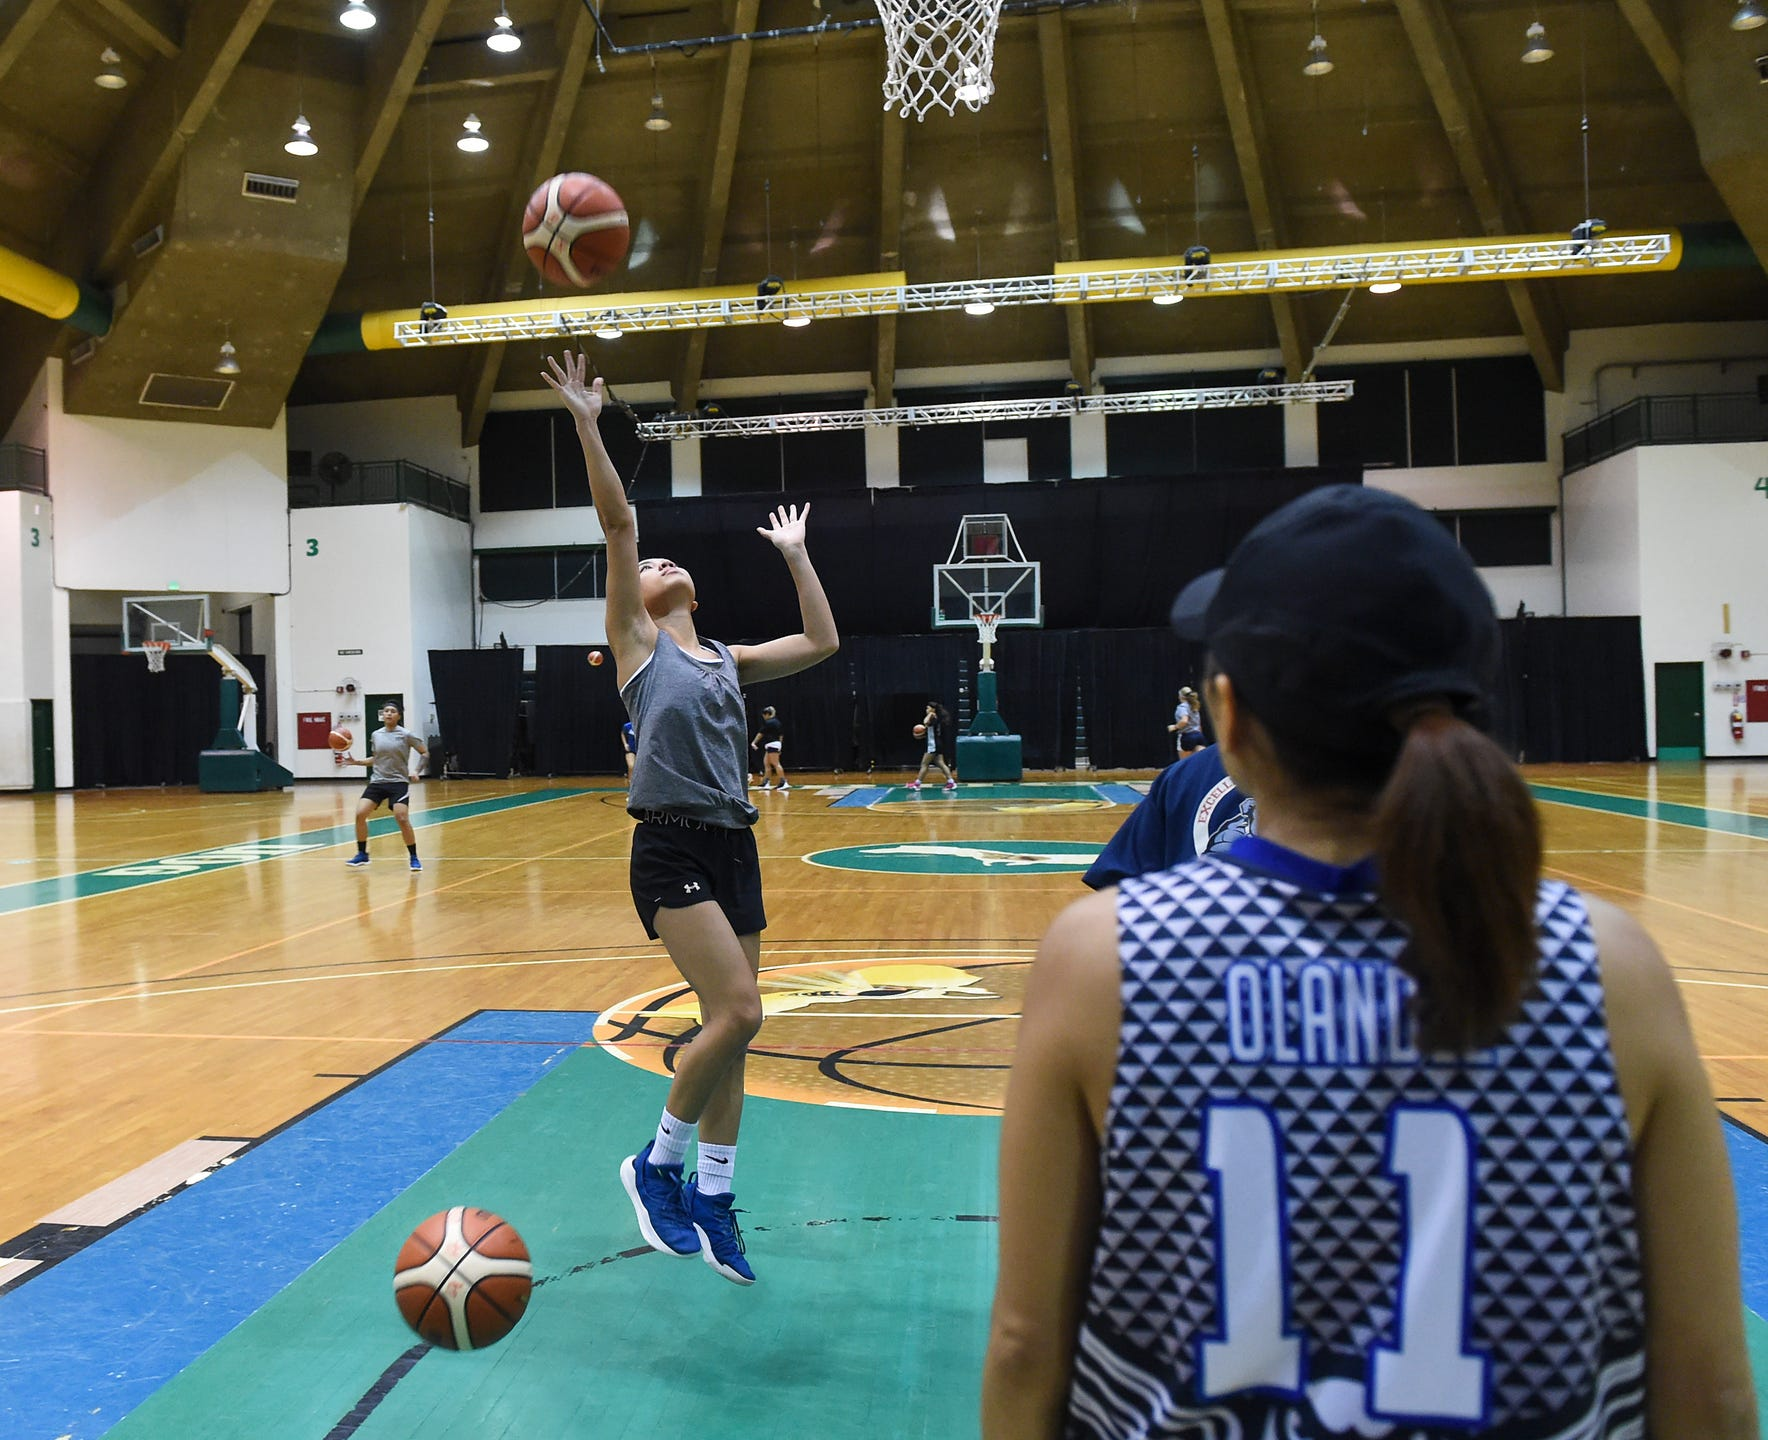 Basketball players try out for UOG's women's basketball team